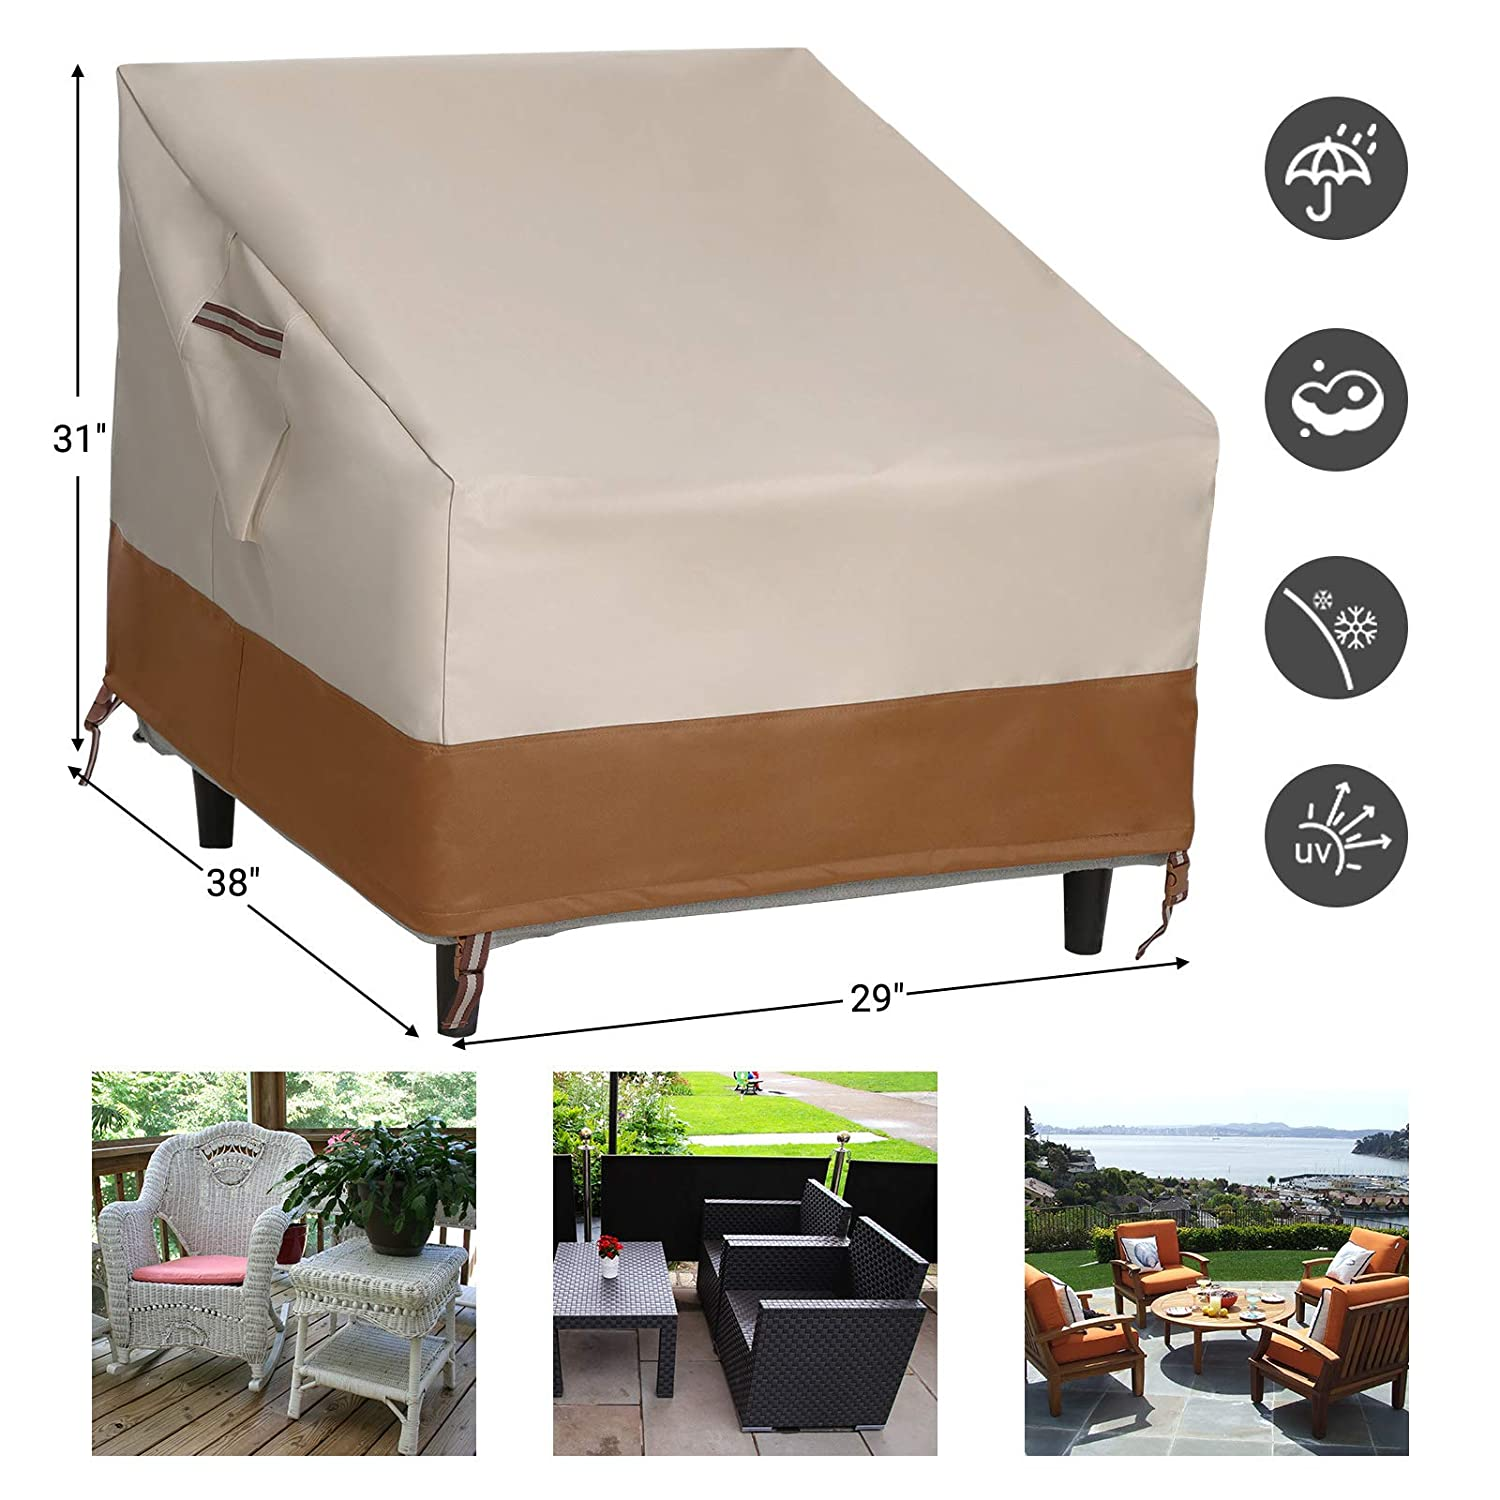 SONGMICS Patio Bench Cover 600D Bench Loveseat Protective Sofa Cover for Deep Lounge Sofa Bench and Outdoor Furniture Waterproof and Anti-Fade UGSC147EC